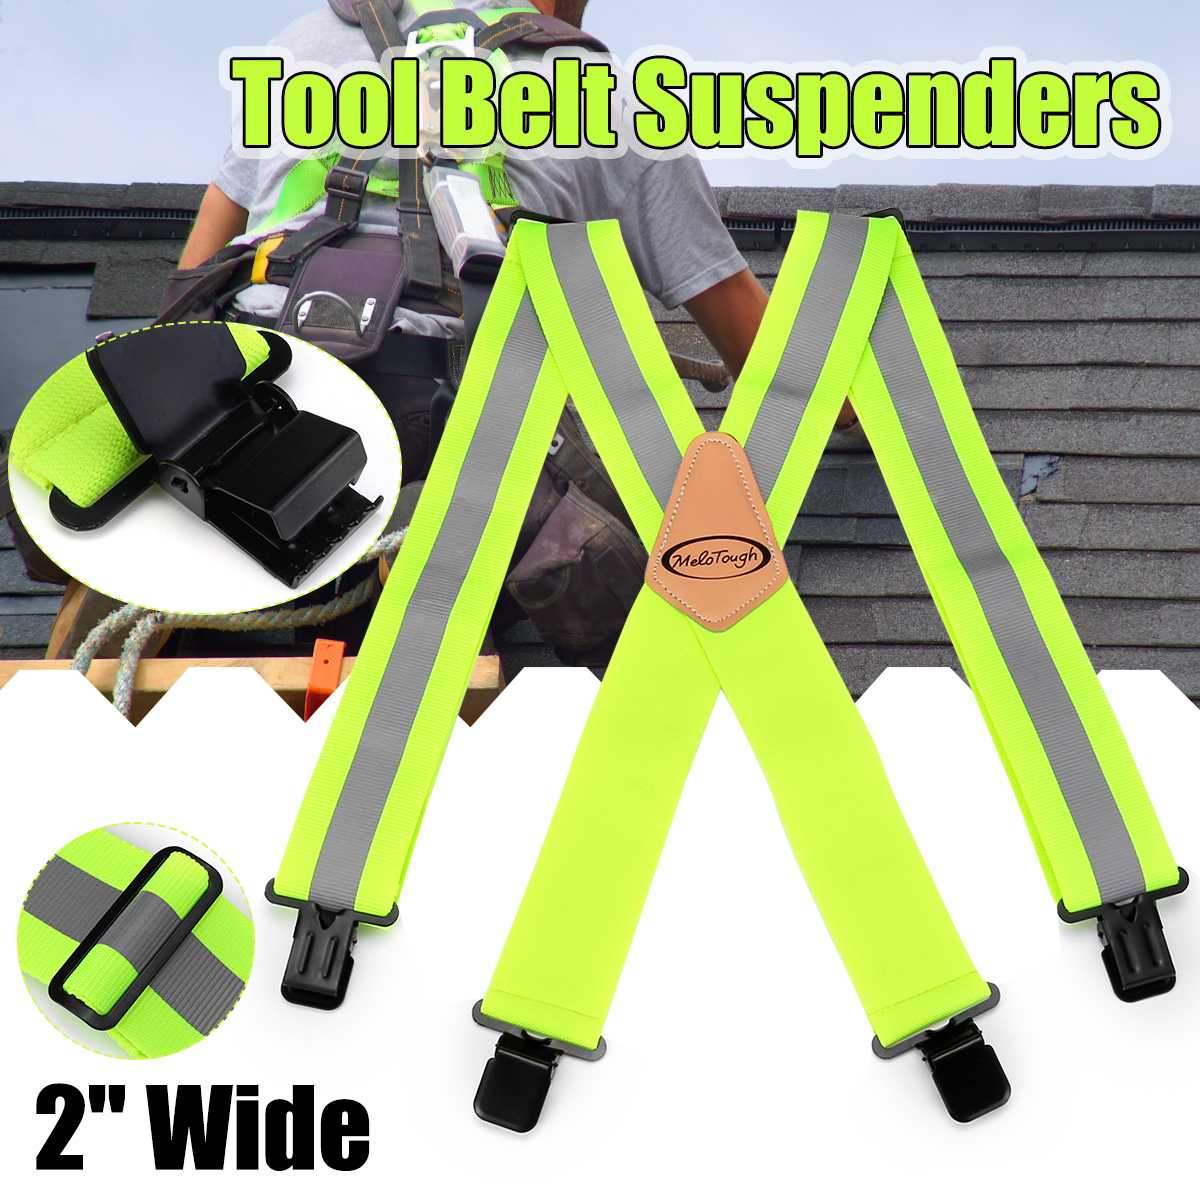 Fluorescent Green Ruler Design Men Suspenders Classic X Shaped 4 Clips Tool Belt Suspenders Men Trousers Suspenders Adjustable